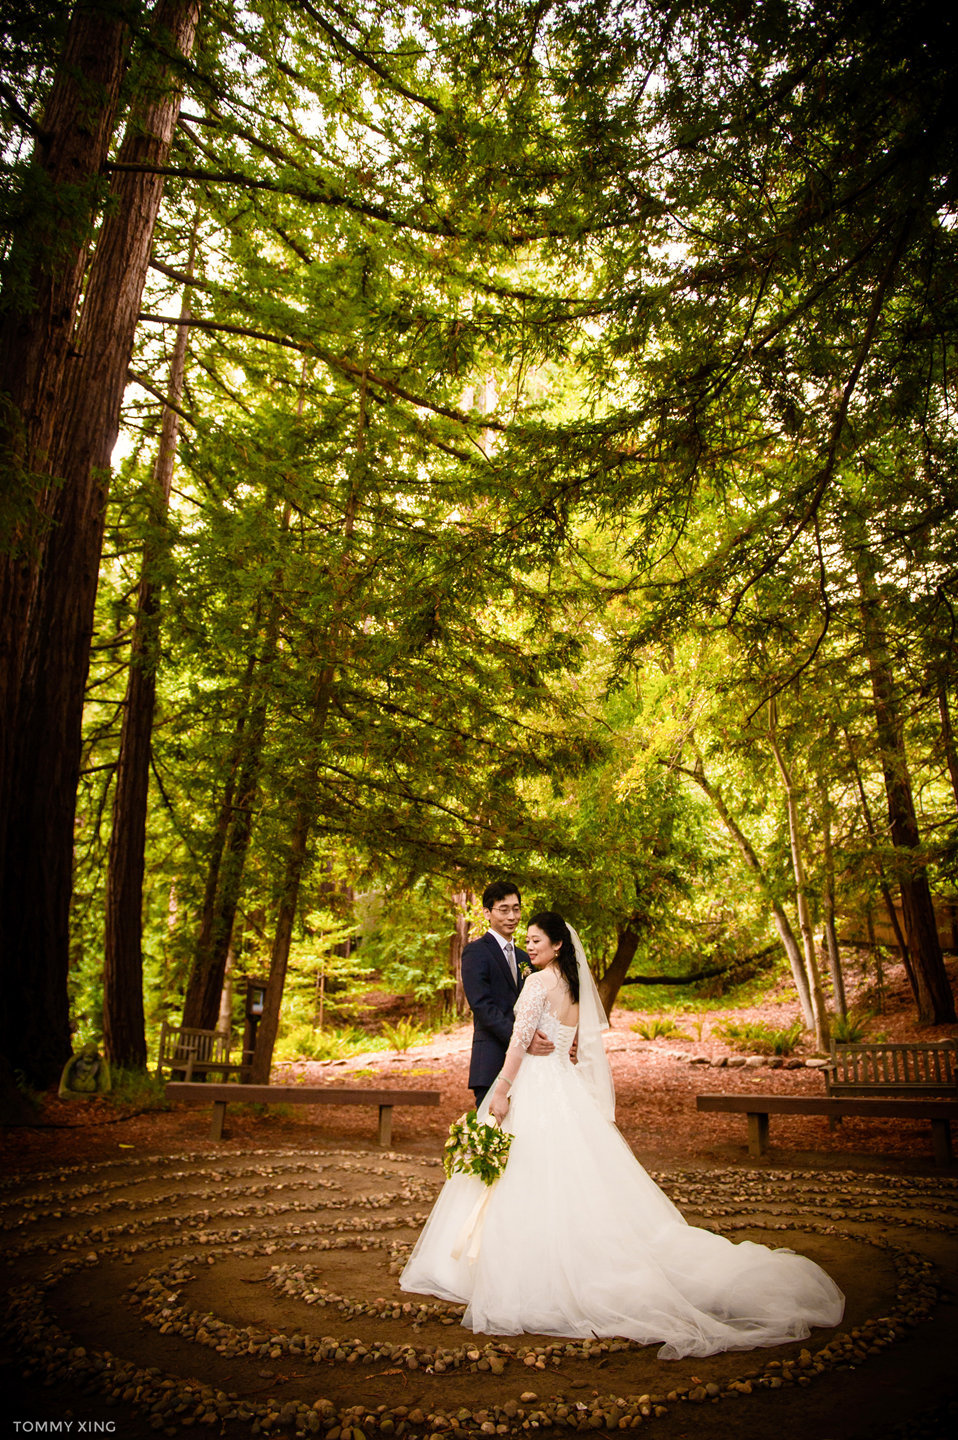 San Francisco Wedding Photography Valley Presbyterian Church WEDDING Tommy Xing Photography 洛杉矶旧金山婚礼婚纱照摄影师099.jpg